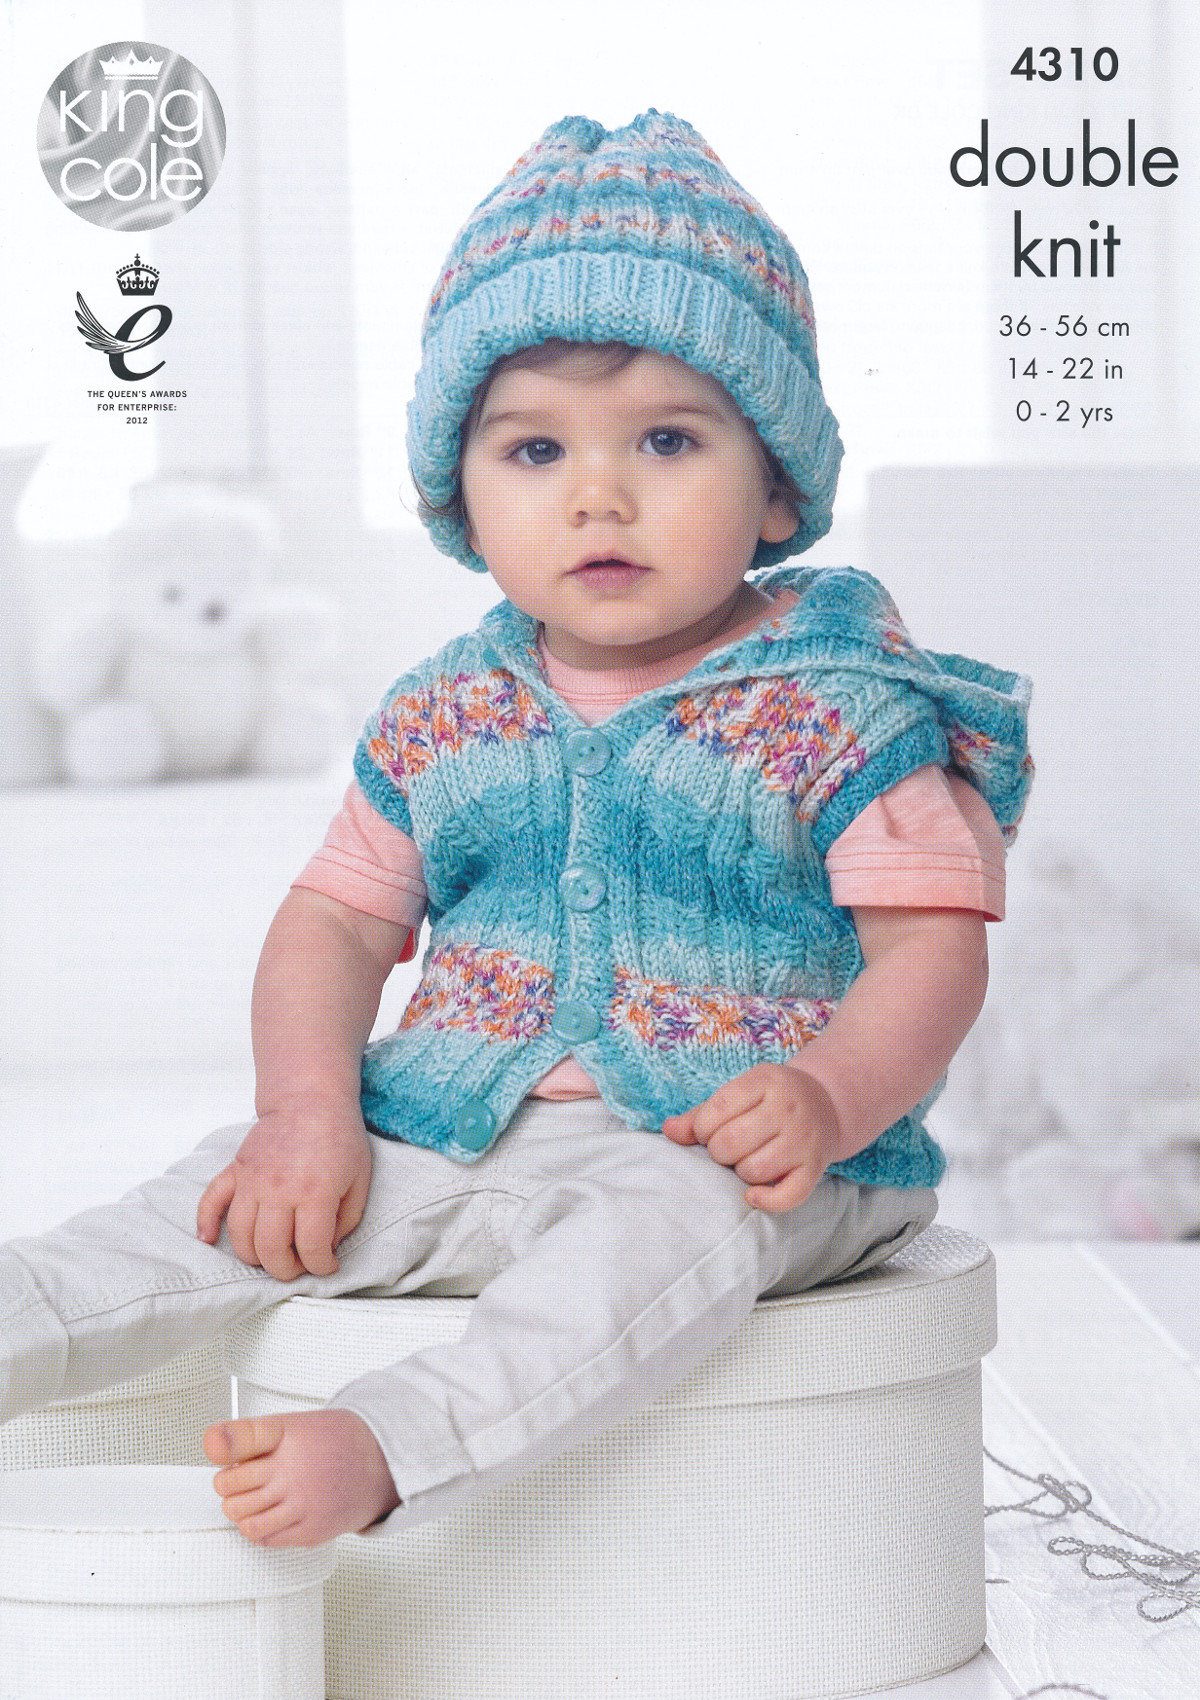 Knitting Patterns For Babies Double Knitting : Baby Drifter DK Knitting Pattern King Cole Jumper Waistcoat Jacket Blanket 43...